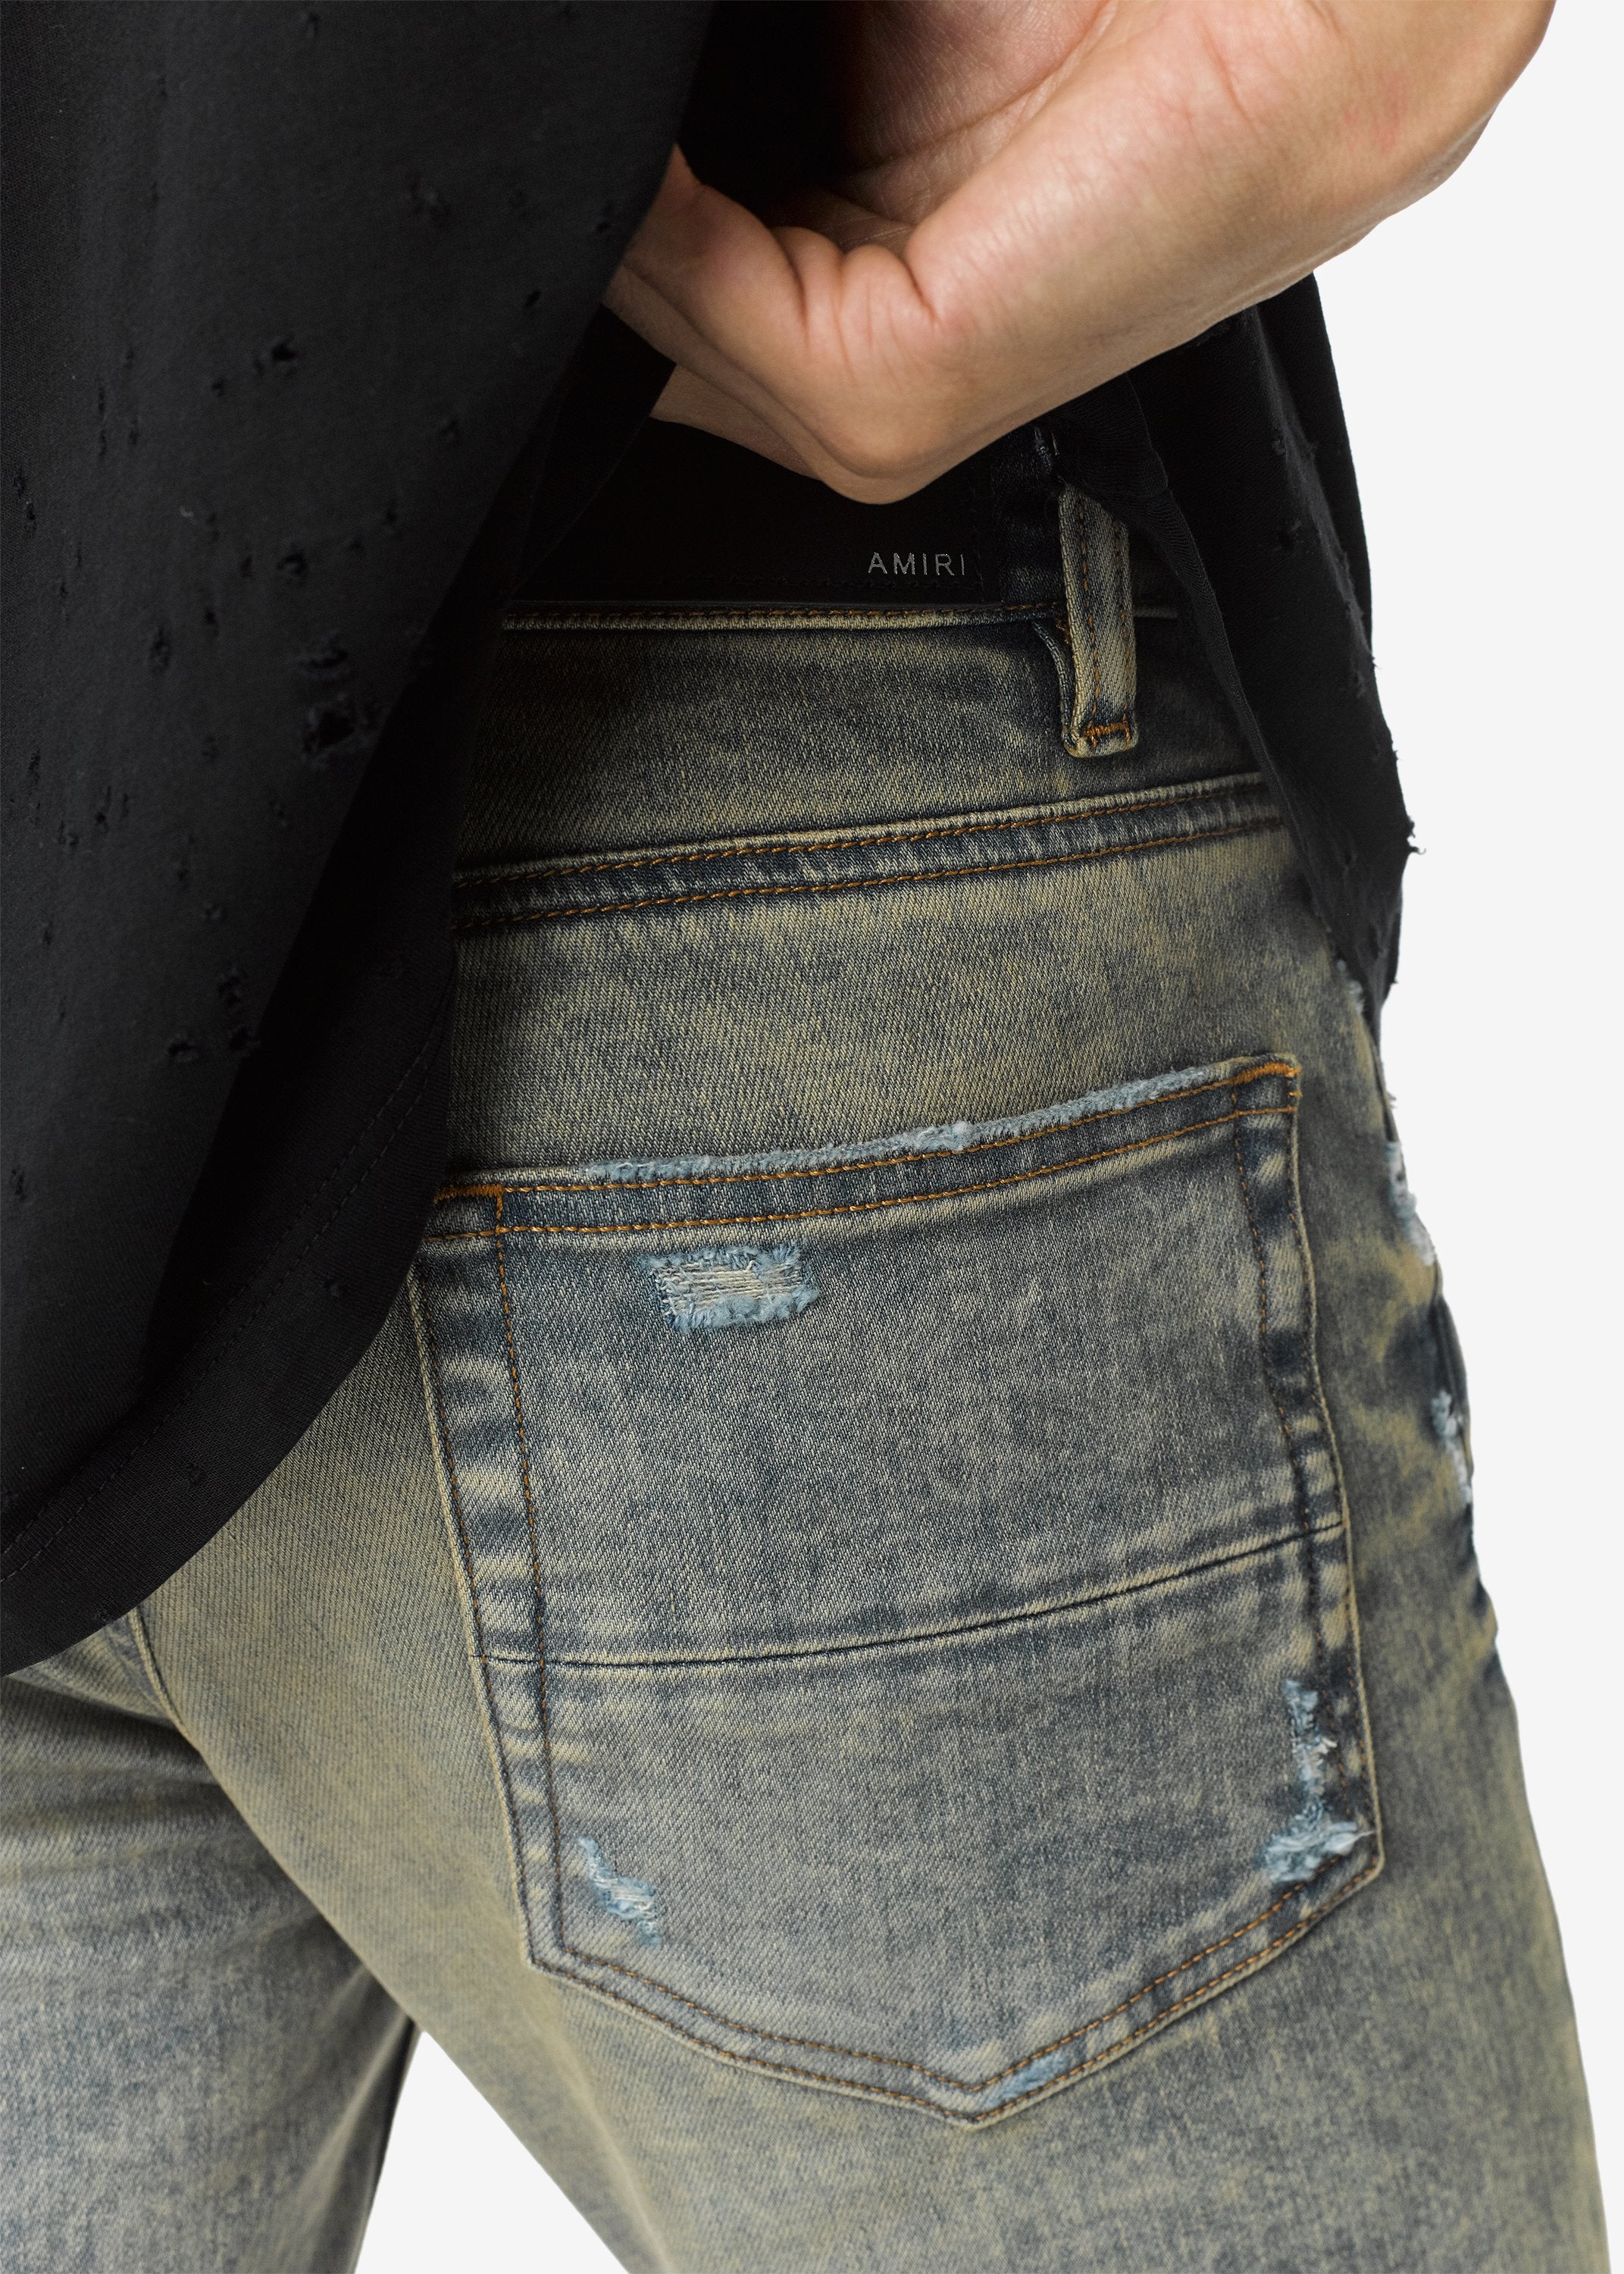 stack-jean-dirty-indigo-image-7